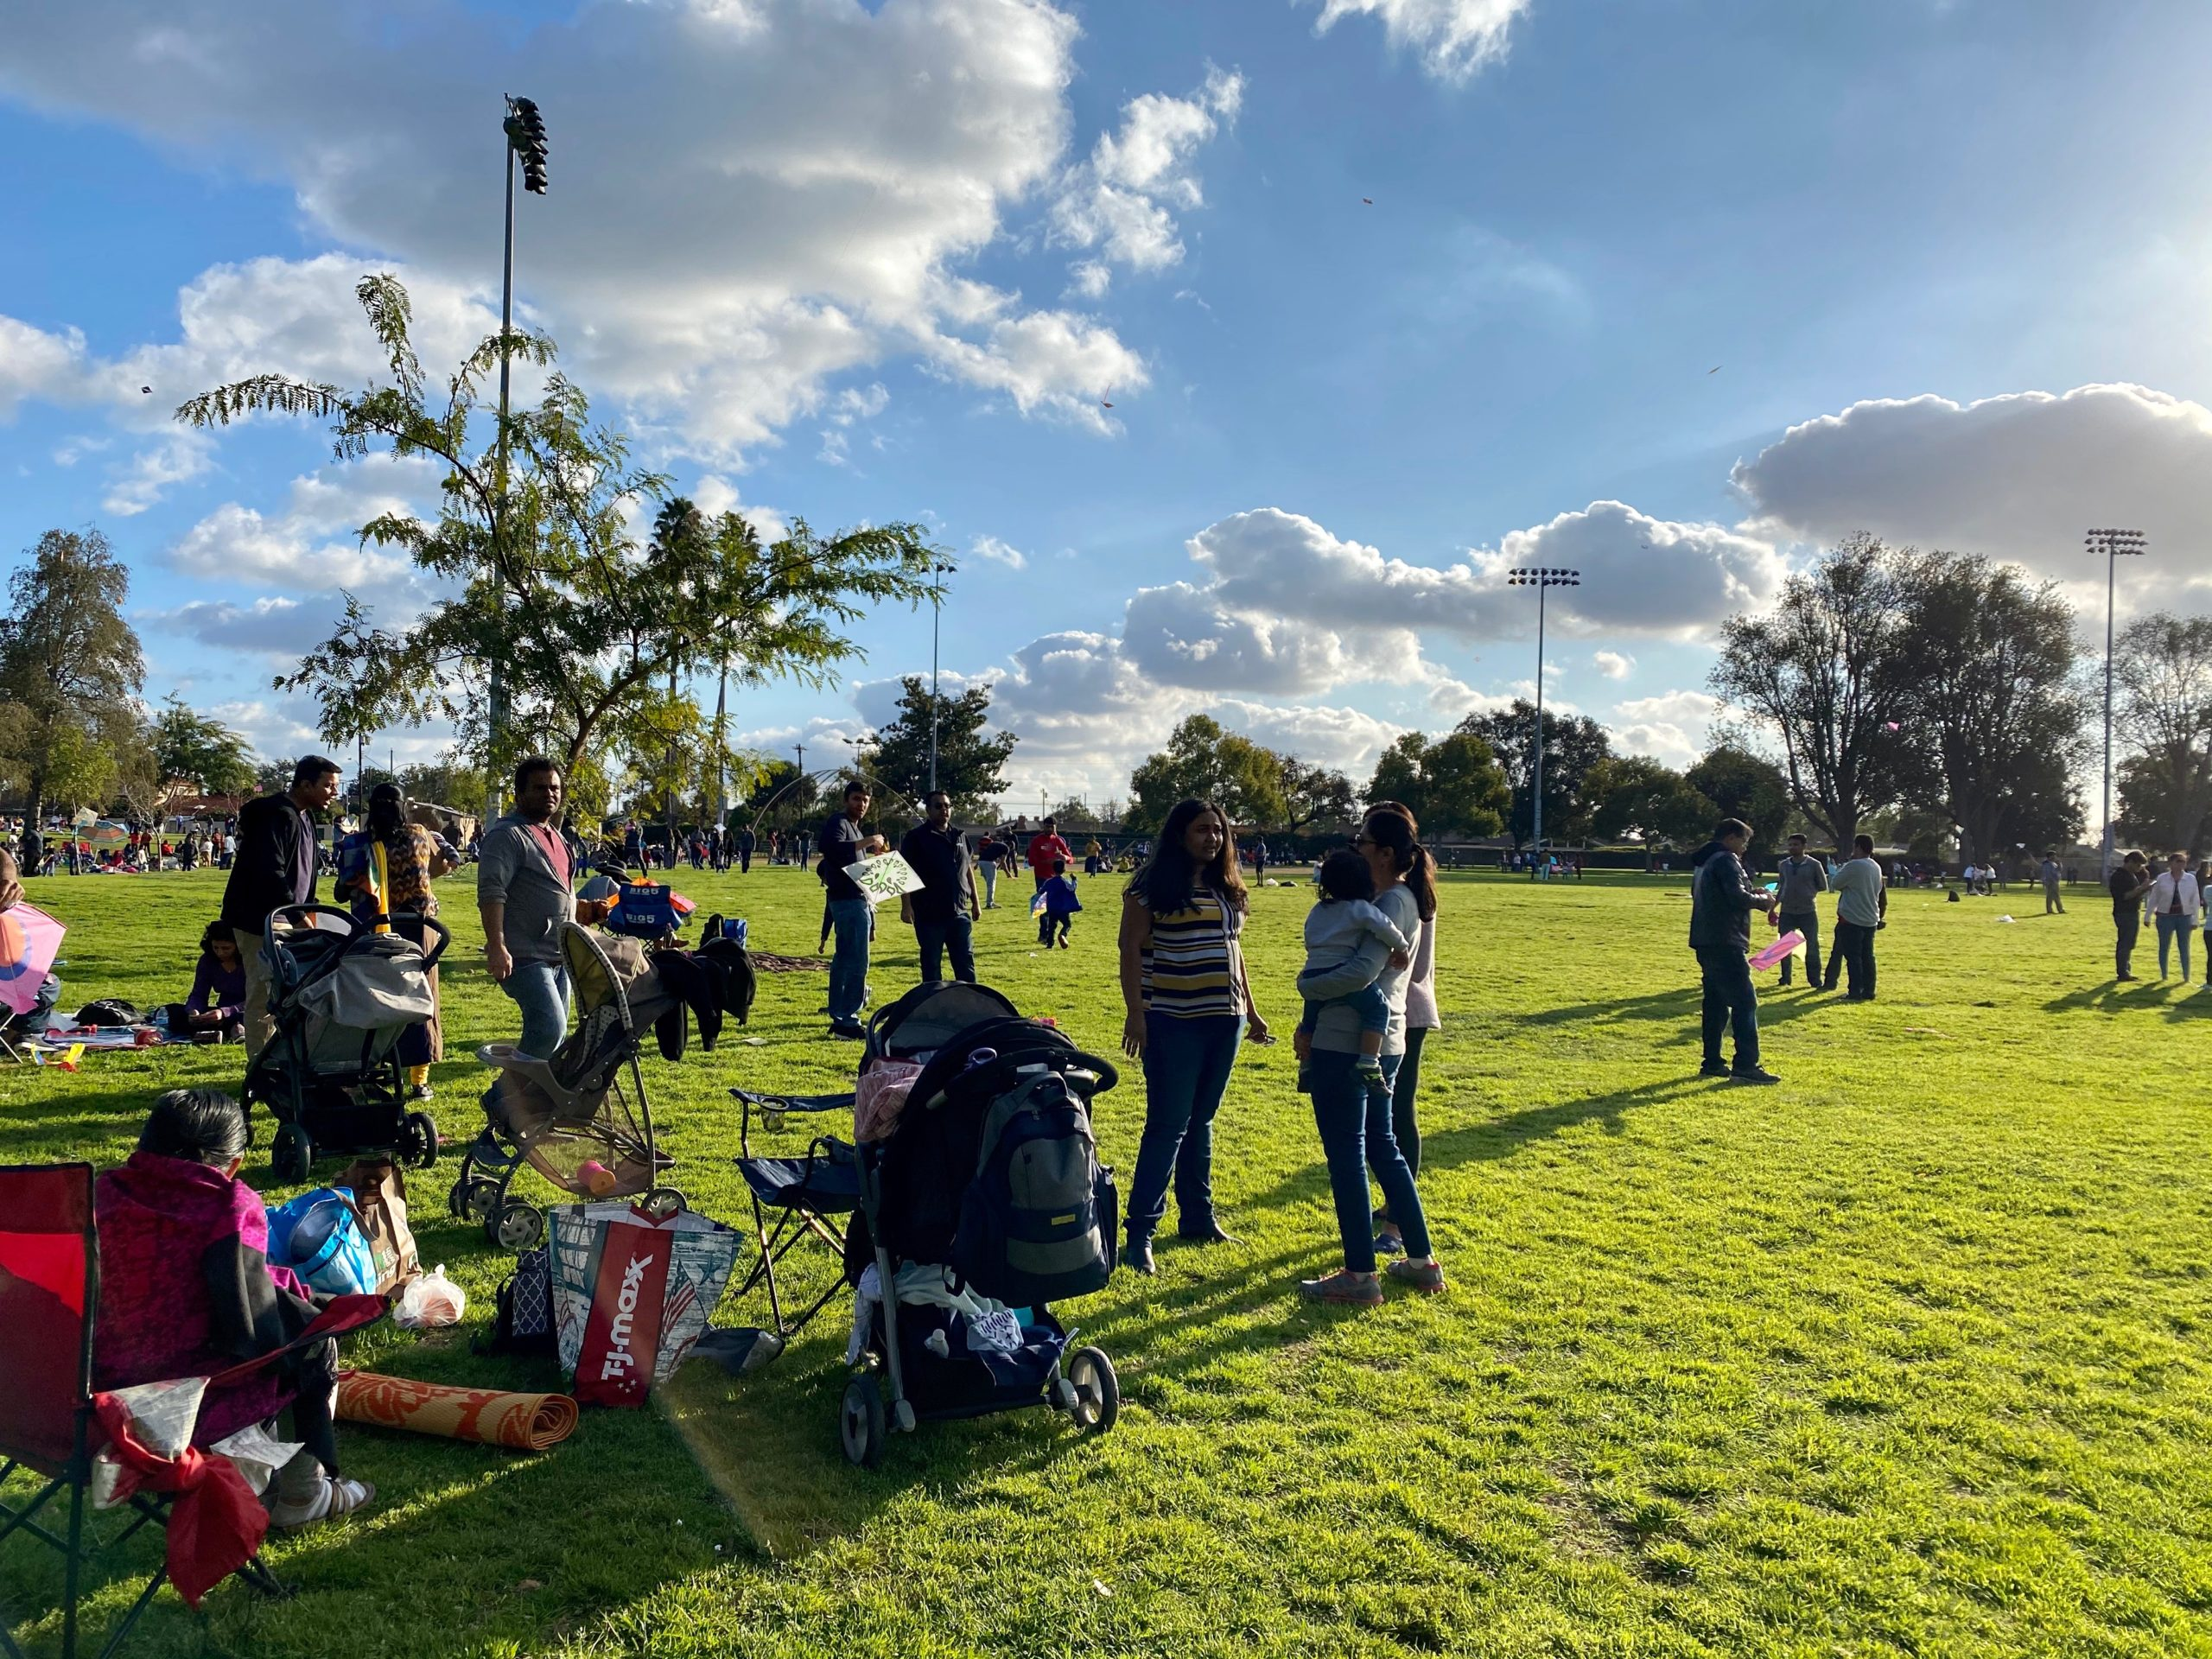 Uttarayan 2019 was attended by over 1,000 kite-flying enthusiasts in the Los Angeles and OC areas.